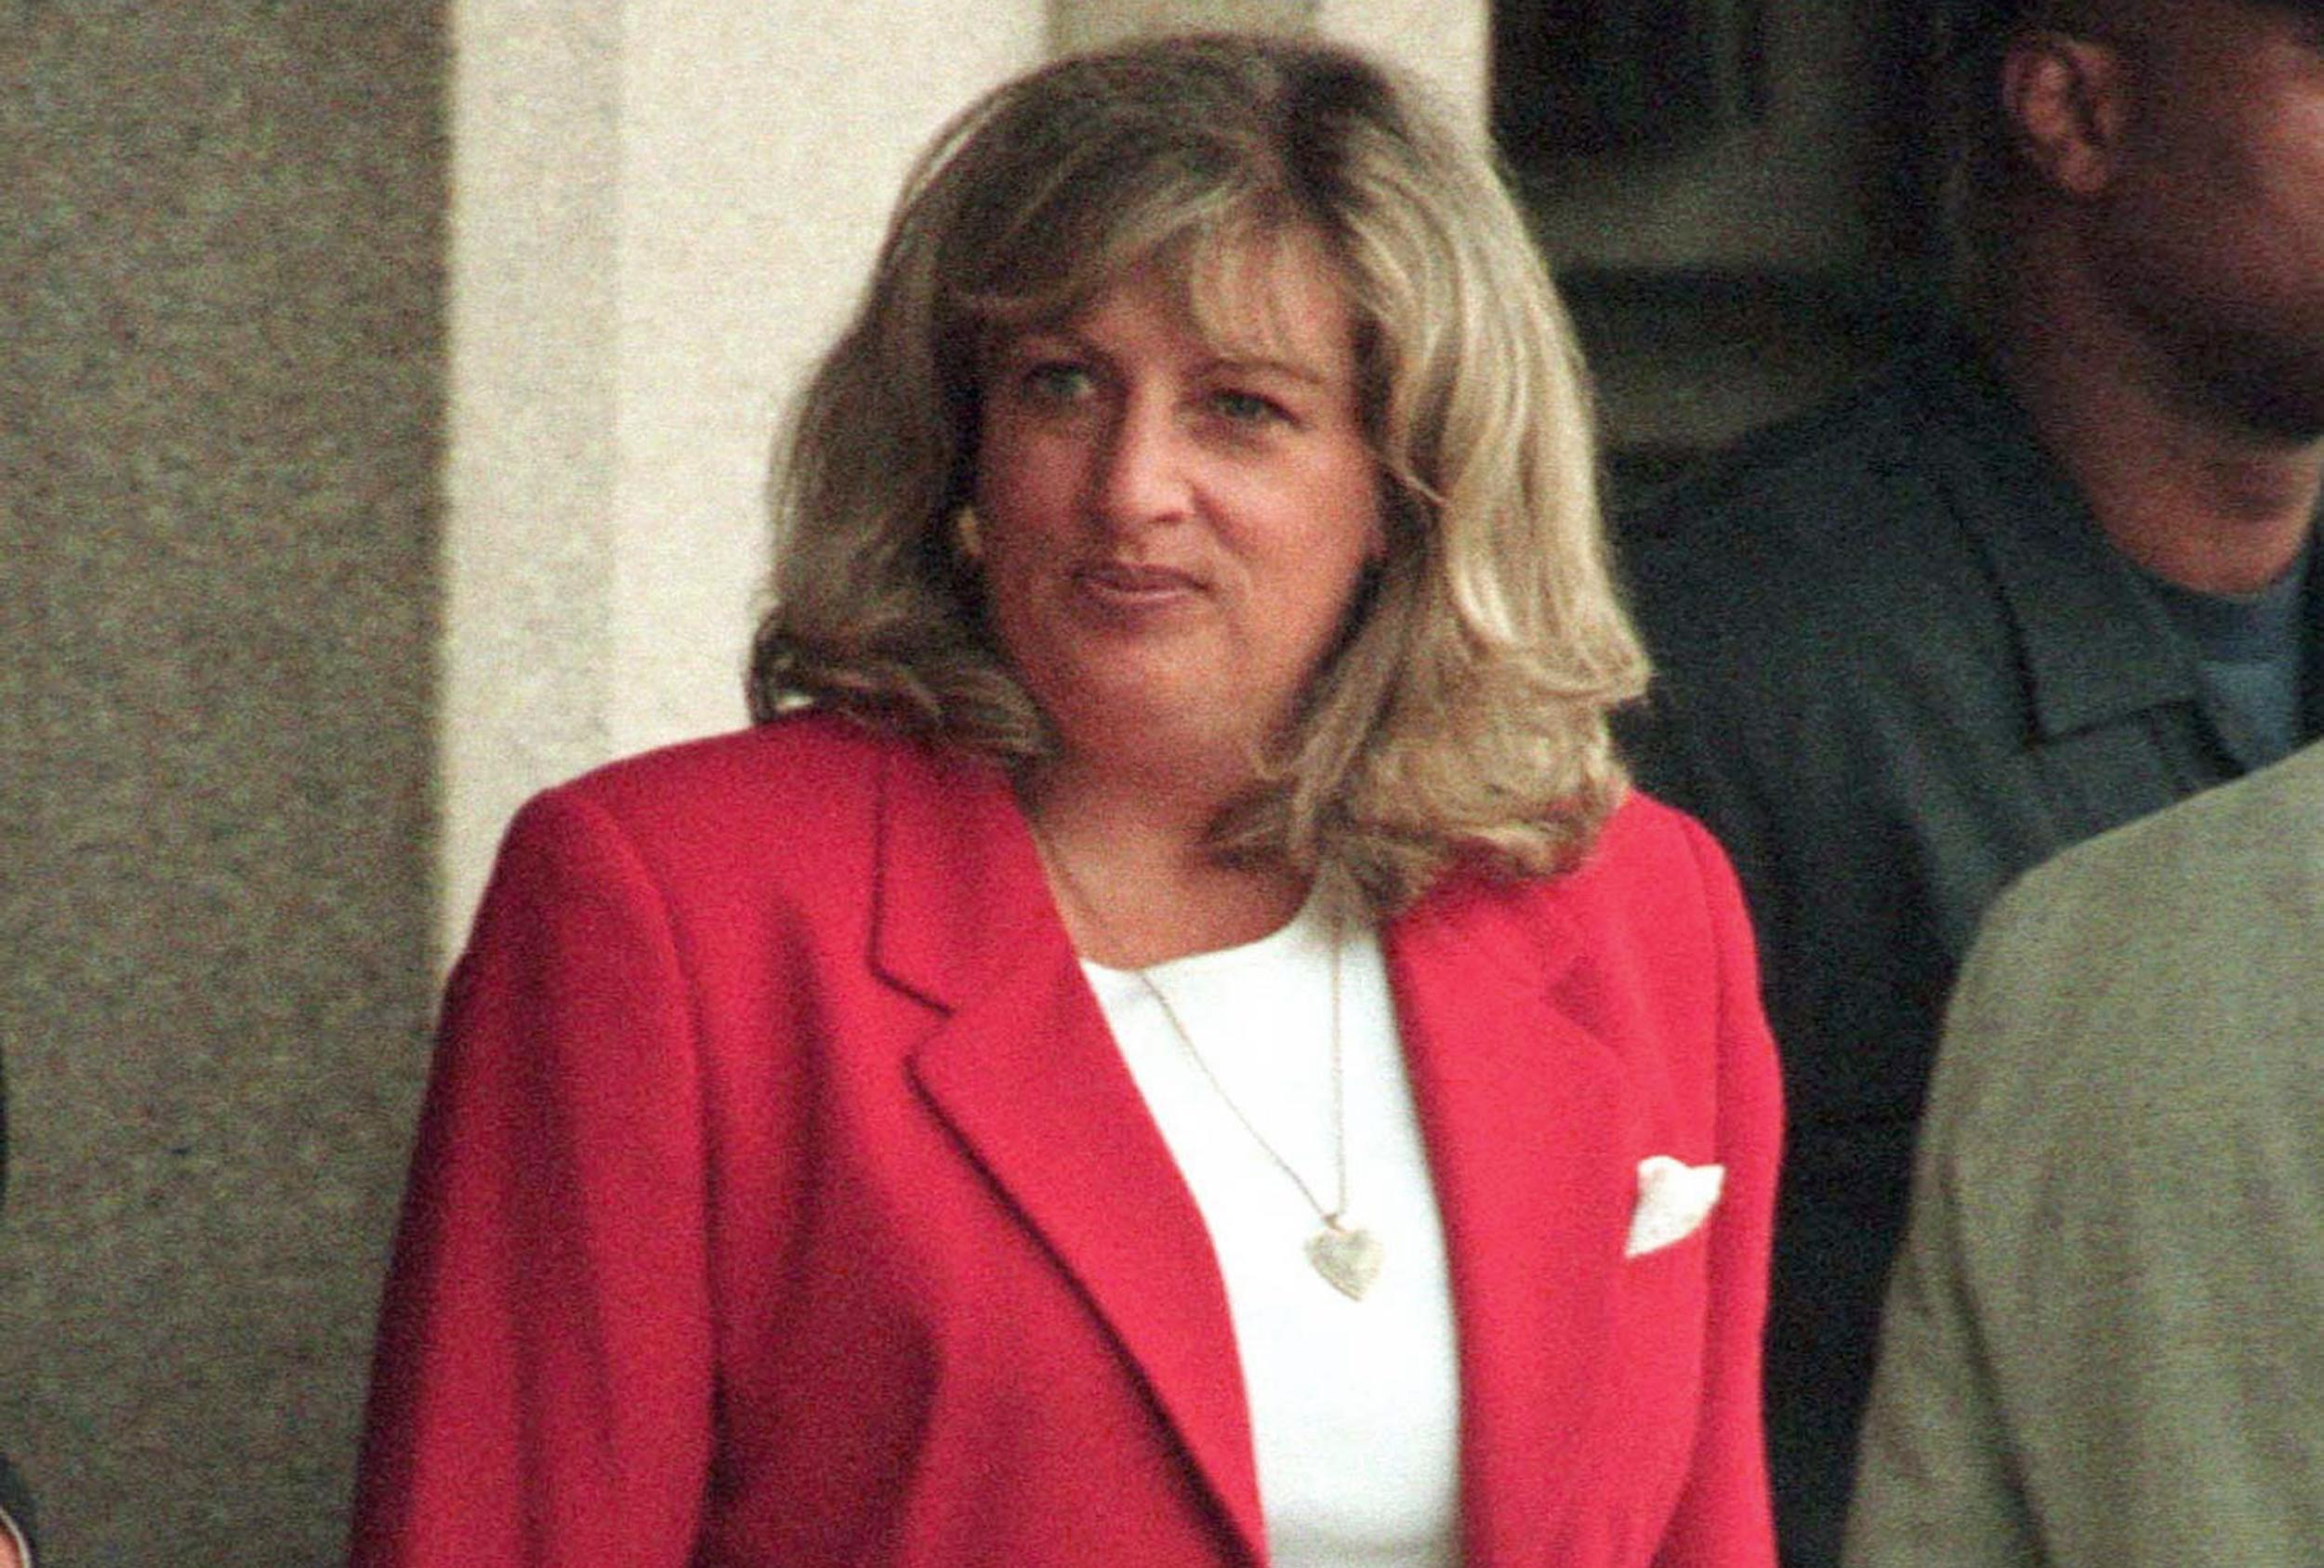 Linda Tripp of Clinton-Lewinsky scandal fame near death, daughter says